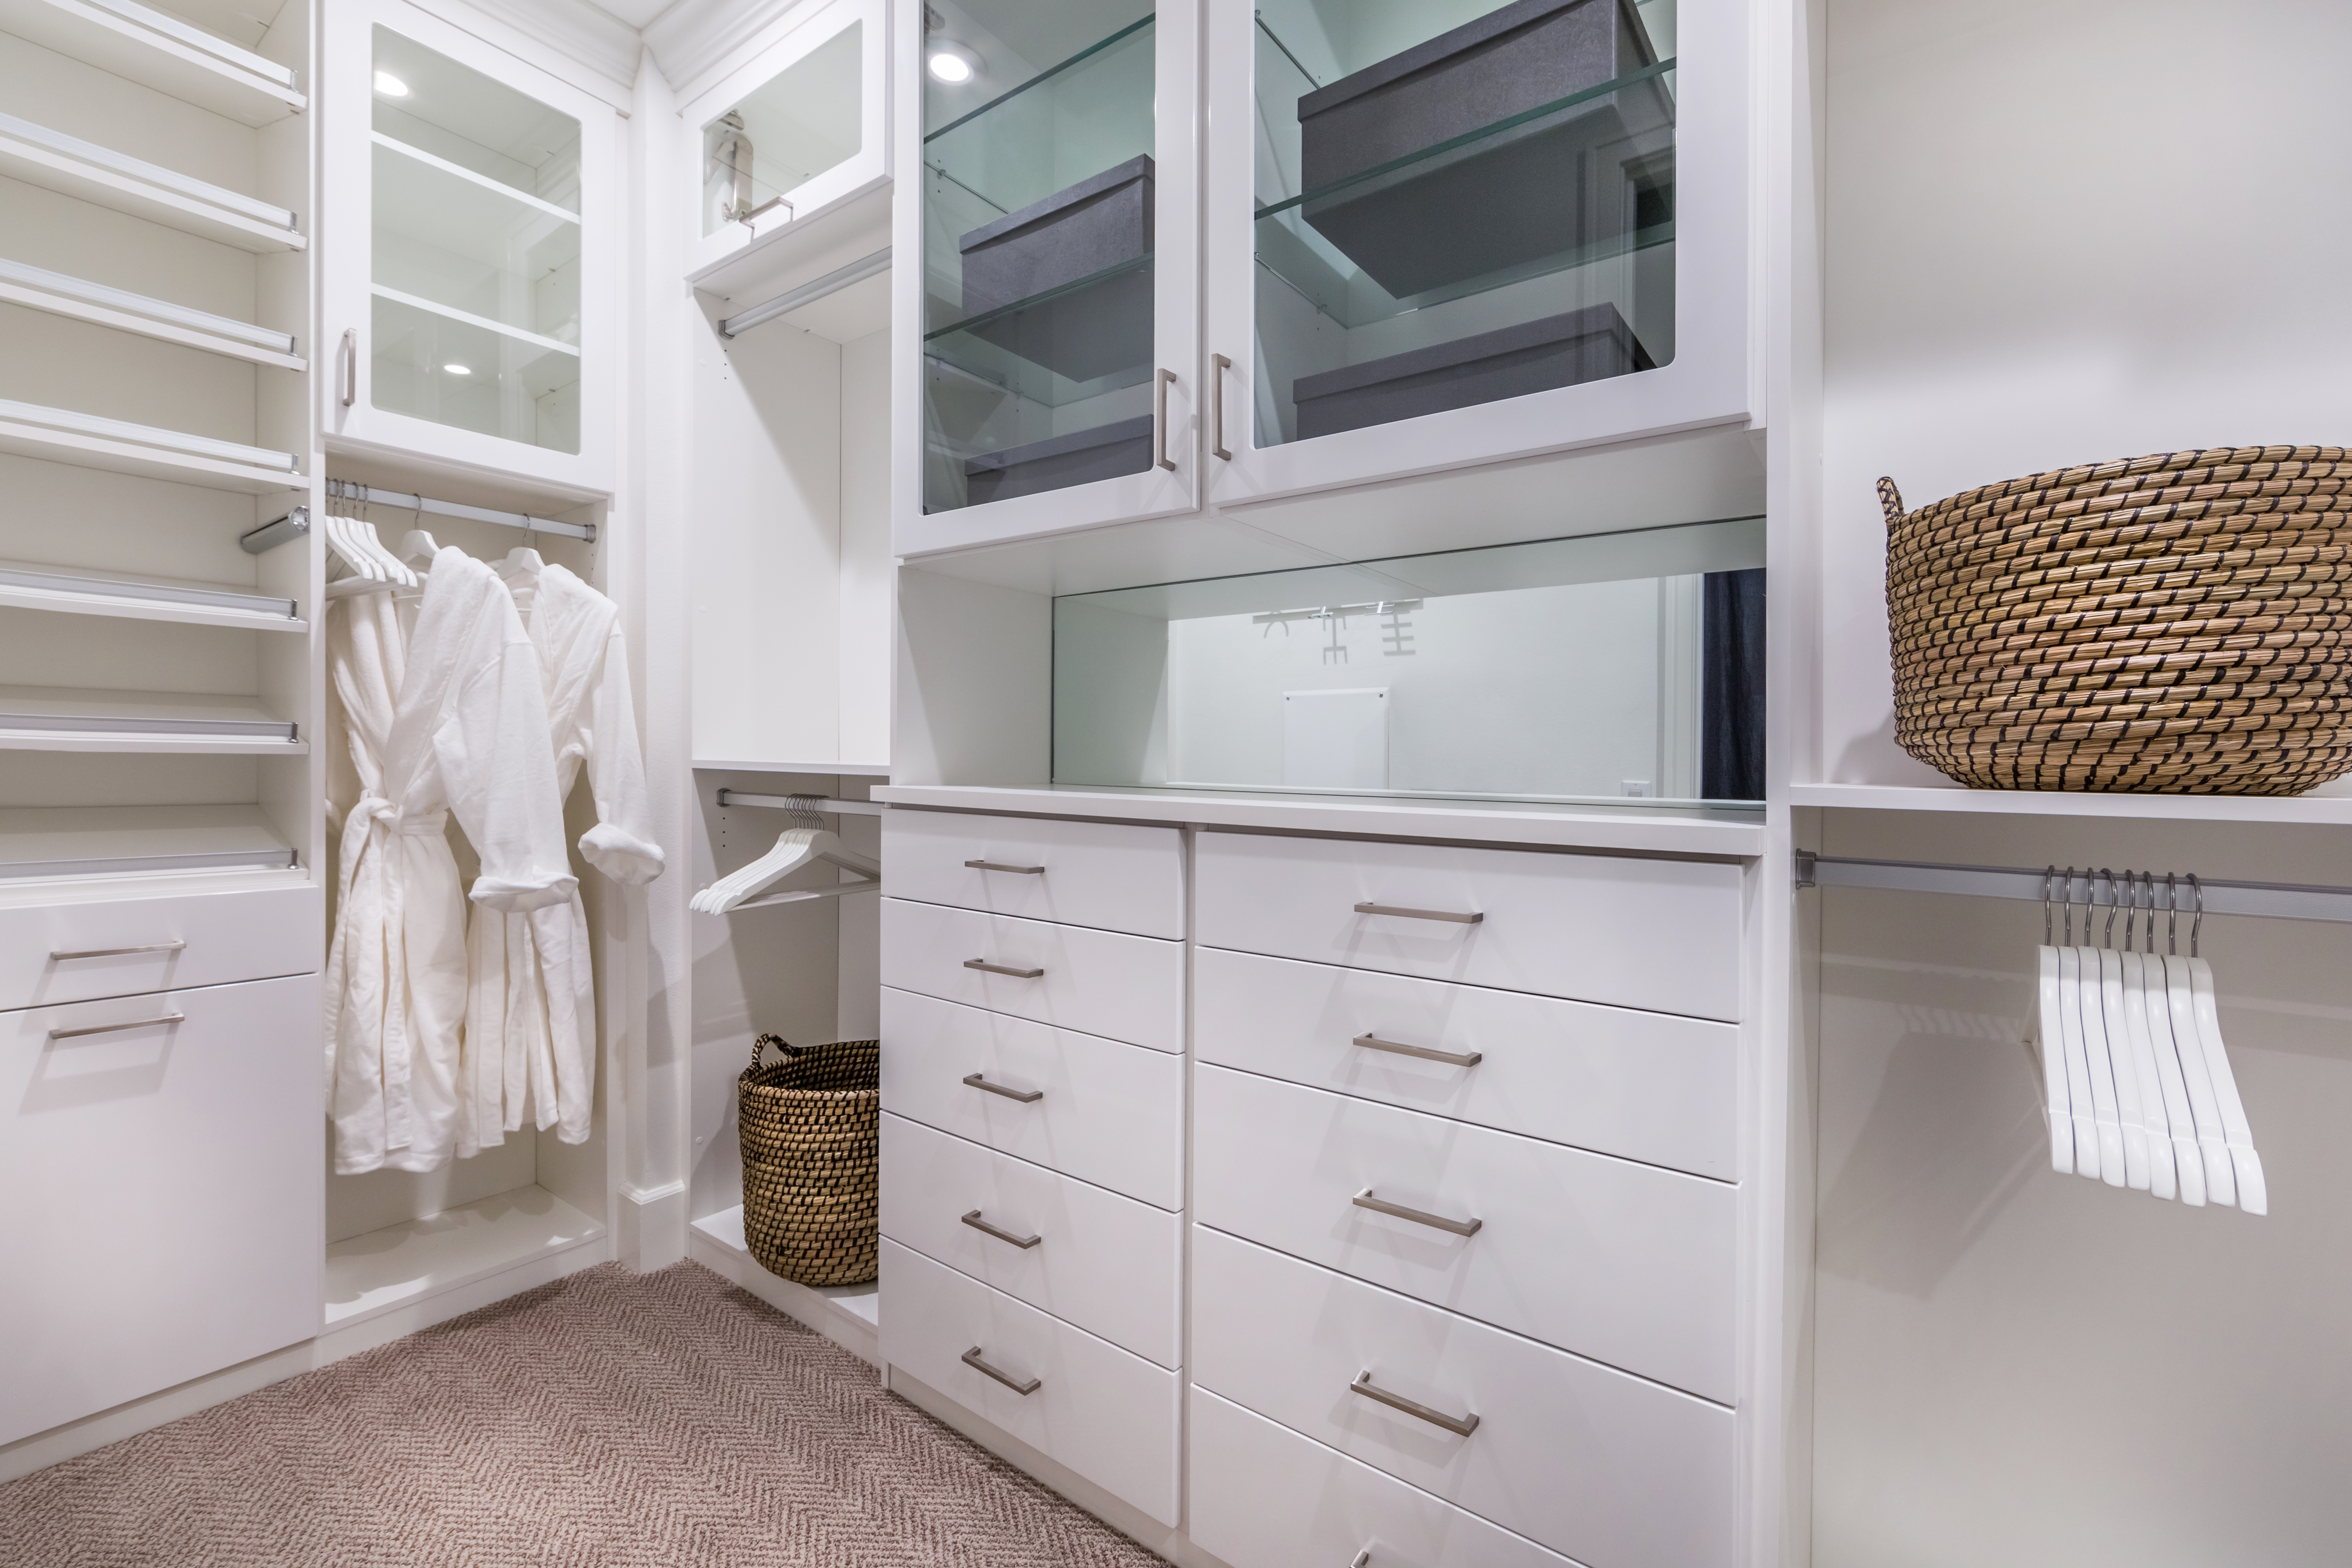 Masetr Closet at Como Residence 1 in Irvine